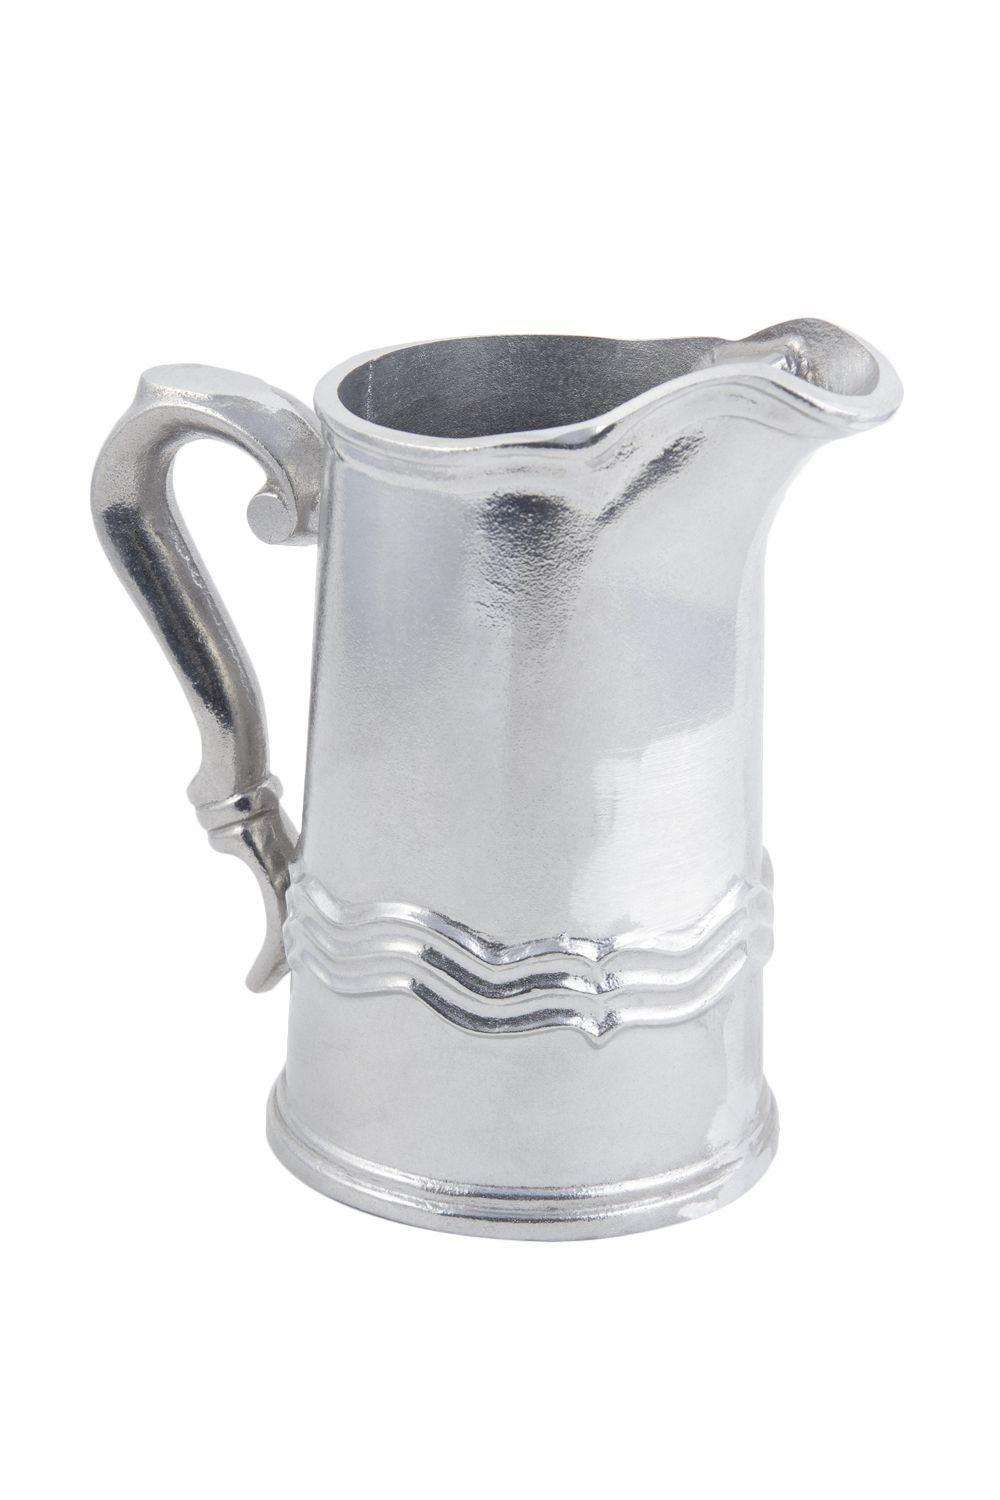 Bon Chef 4035P Queen Anne Water Pitcher, Pewter Glo 2 Qt.